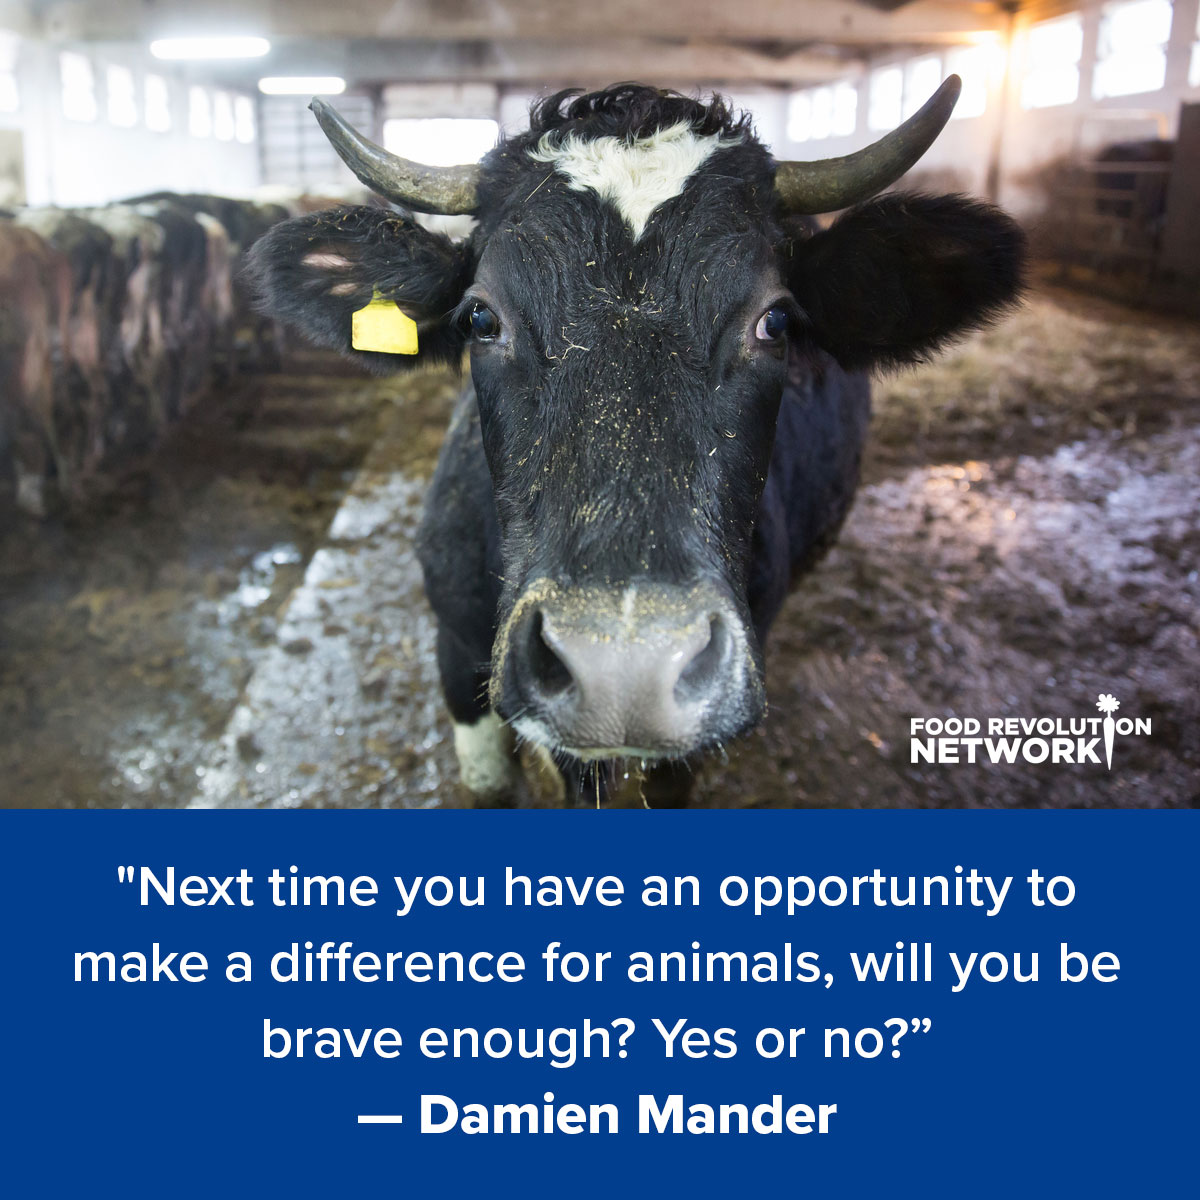 """Next time you have an opportunity to make a difference for animals, will you be brave enough? Yes or no?"" — Damien Mander"